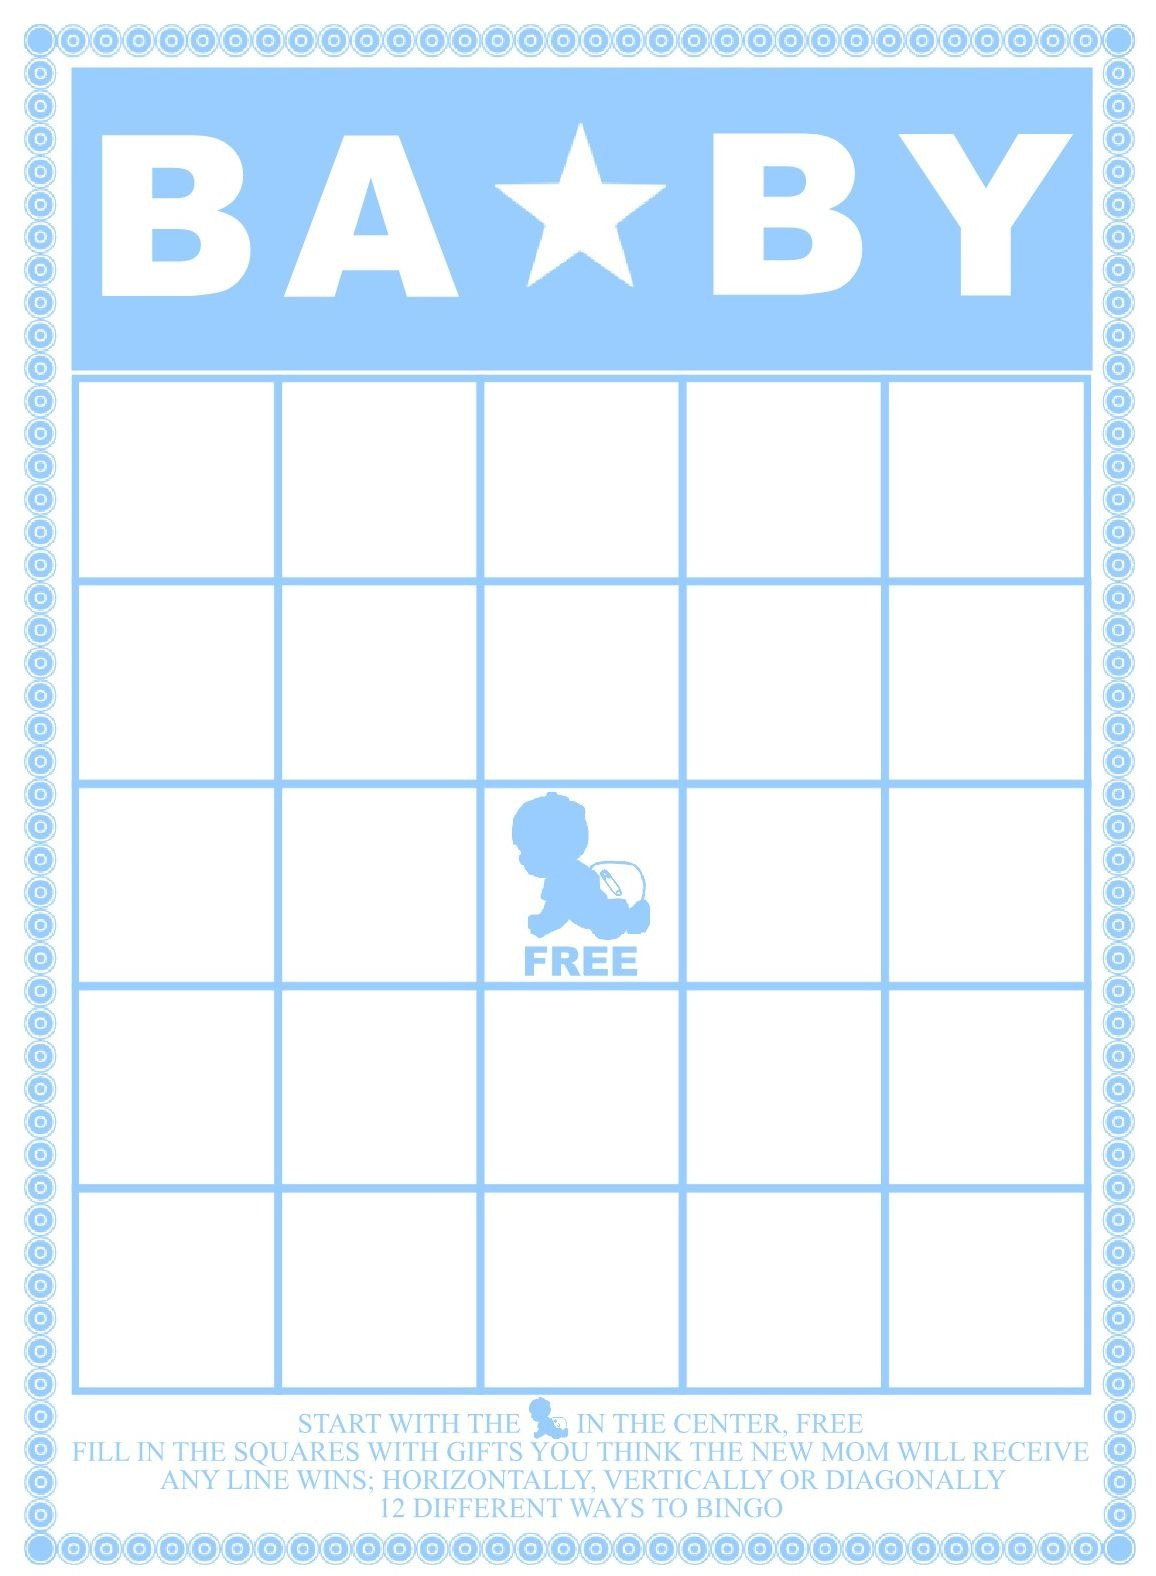 29 Sets Of Free Baby Shower Bingo Cards Pertaining To Baby Bingo - Free Printable Baby Shower Bingo Cards